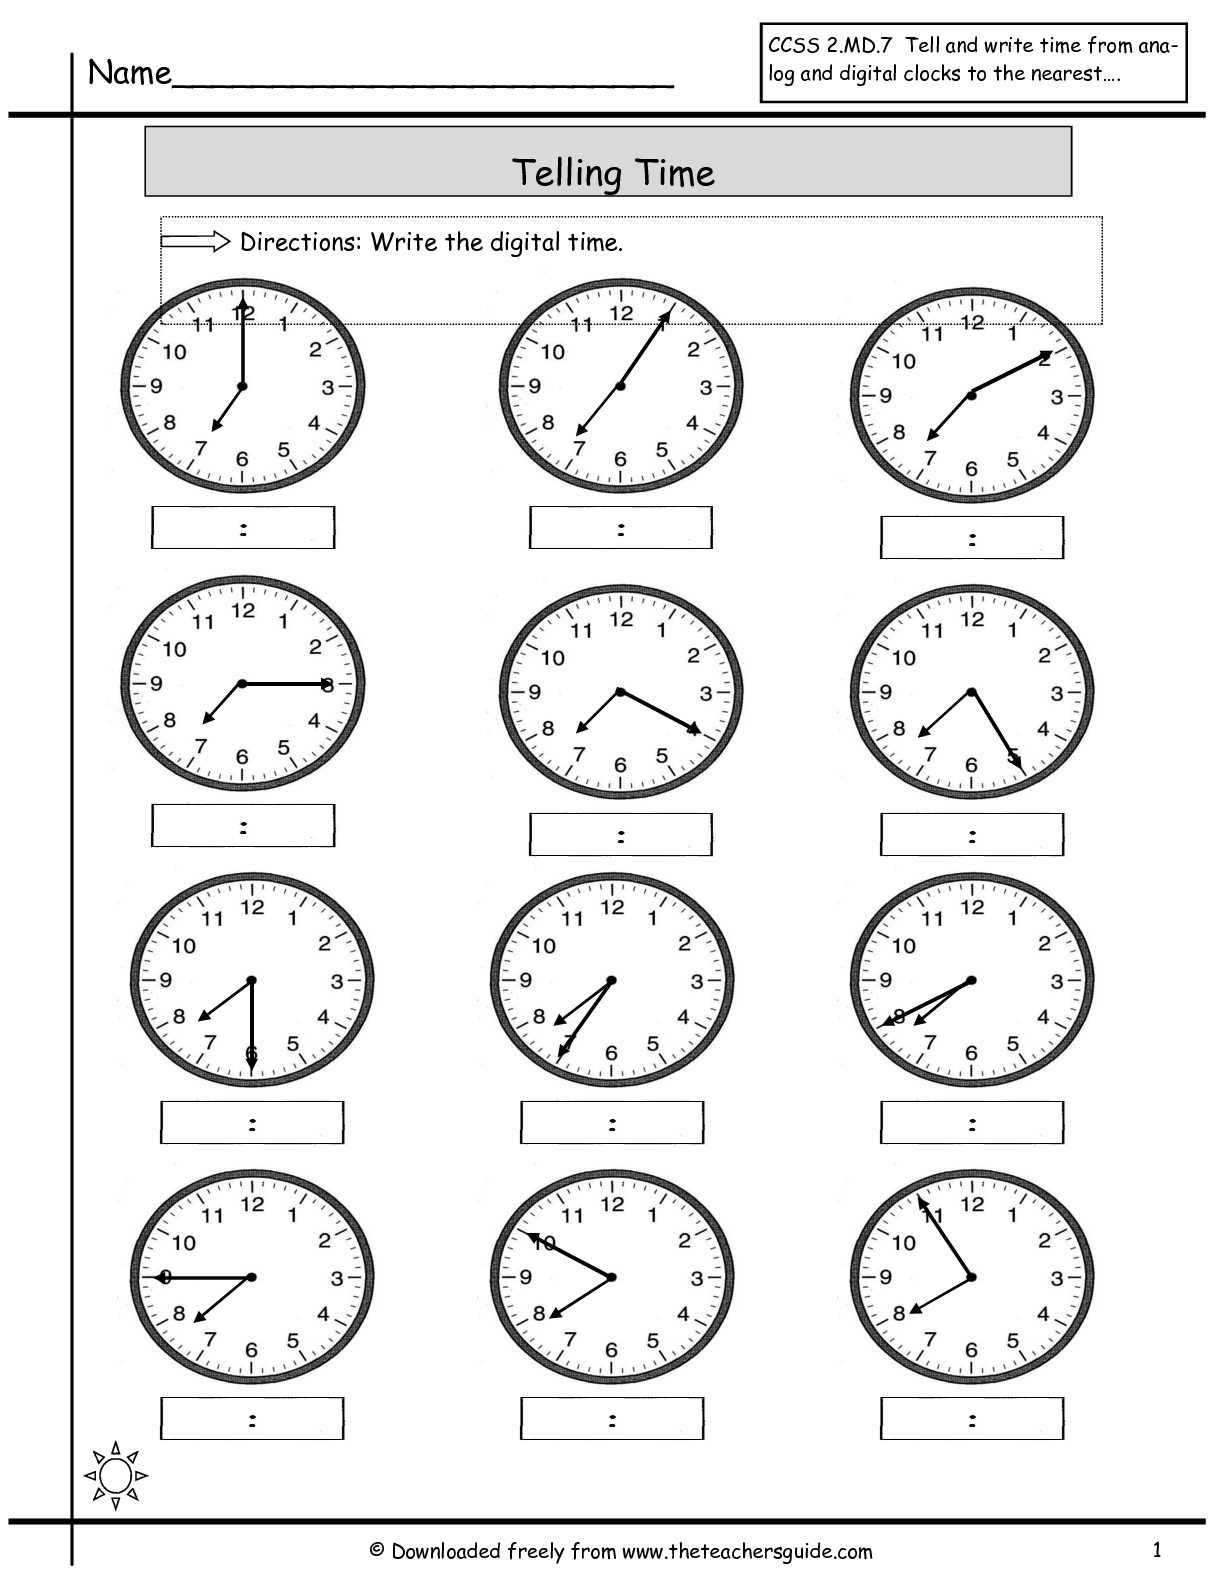 Telling Time Worksheets Printable